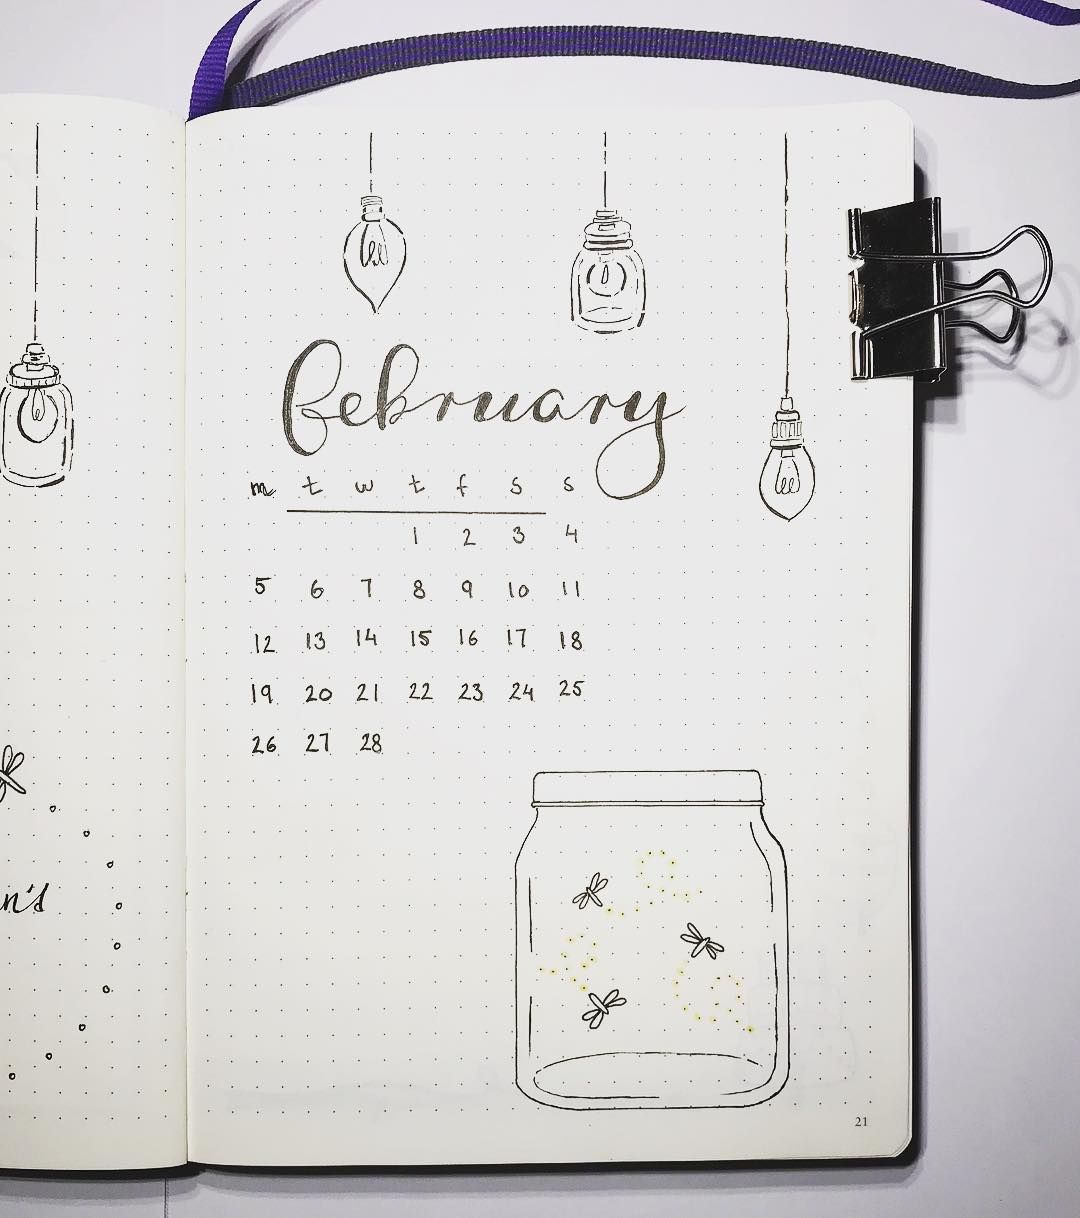 hight resolution of bullet journal monthly cover page february cover page fireflies in a jar drawing lightbulb drawings nordic notes